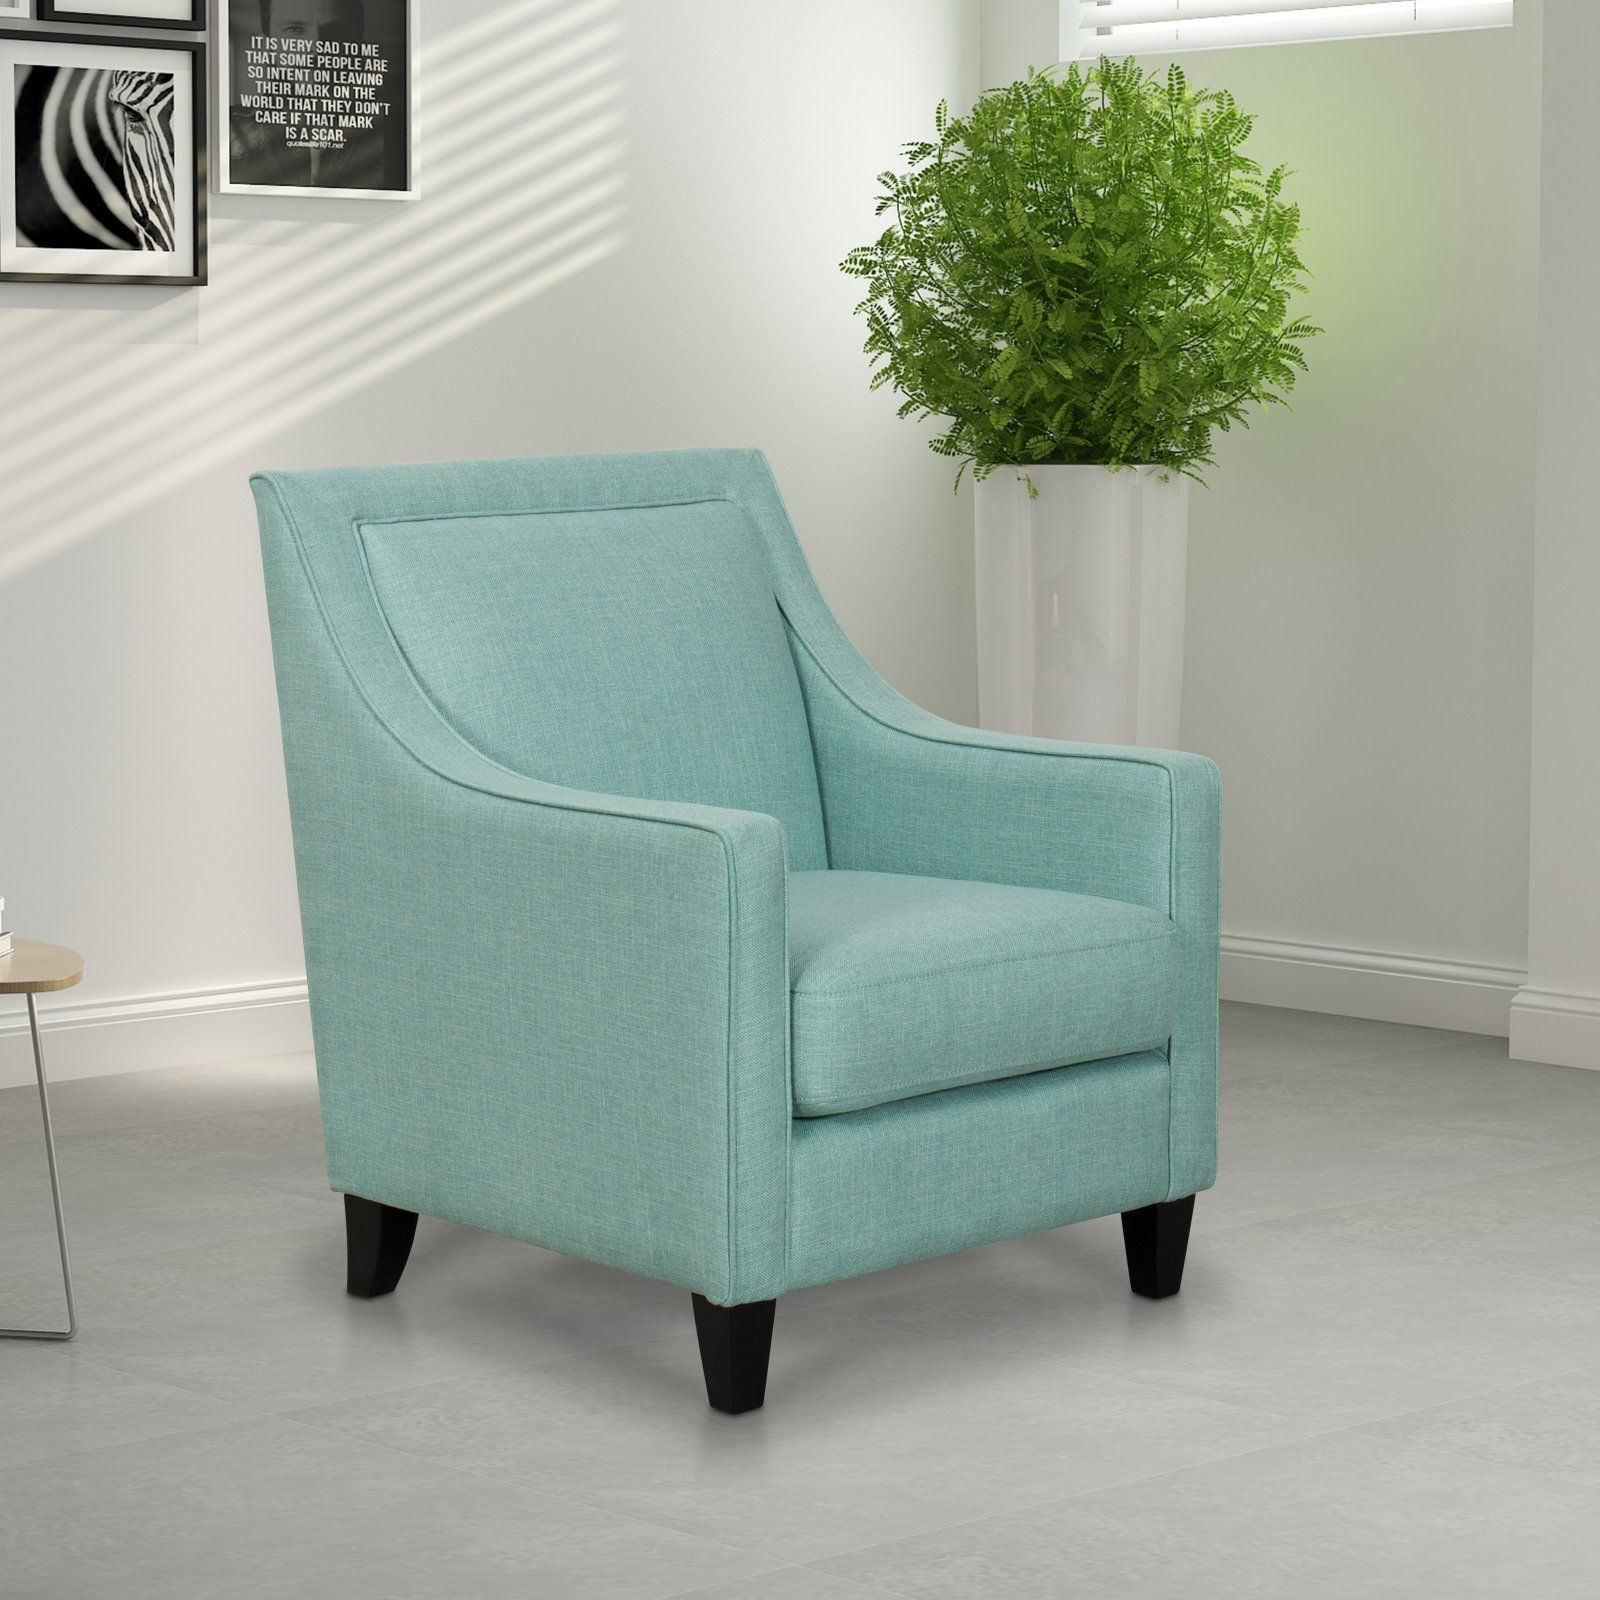 John Boyd Upholstered Accent Chair Products In 2019